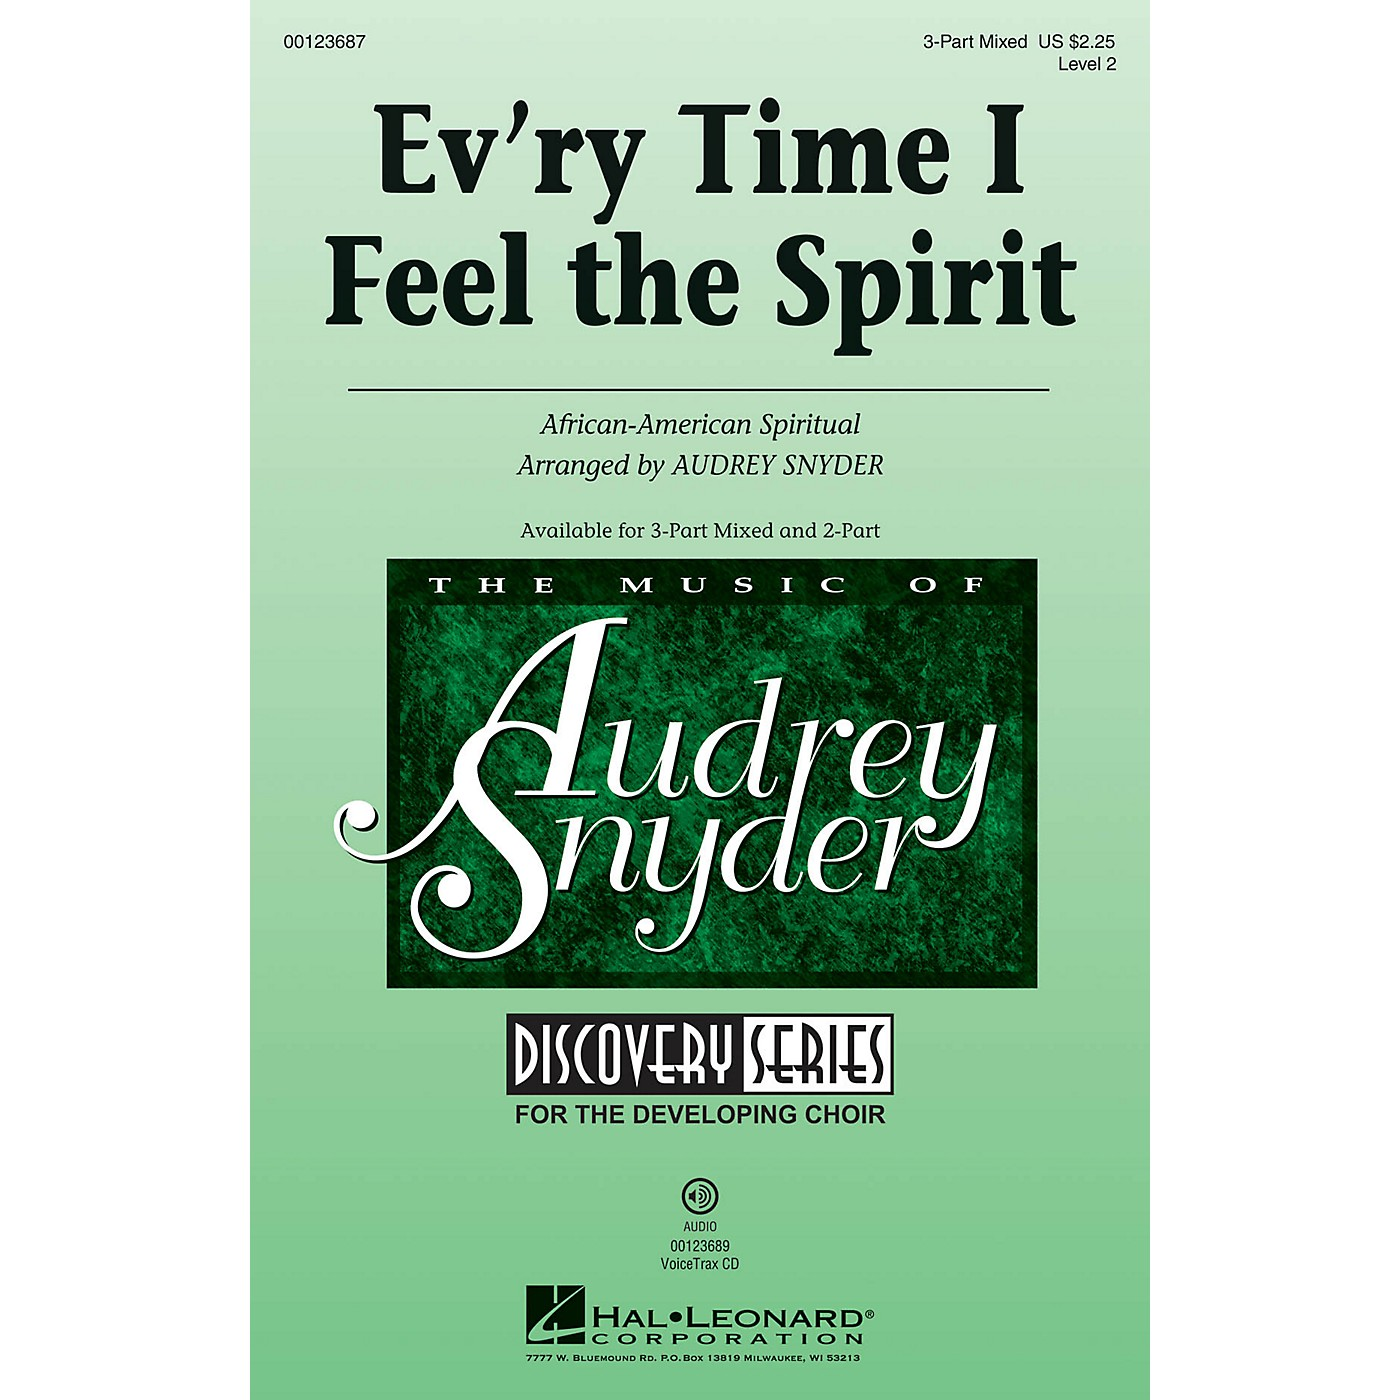 Hal Leonard Ev'ry Time I Feel the Spirit (Discovery Level 2) 3-Part Mixed arranged by Audrey Snyder thumbnail